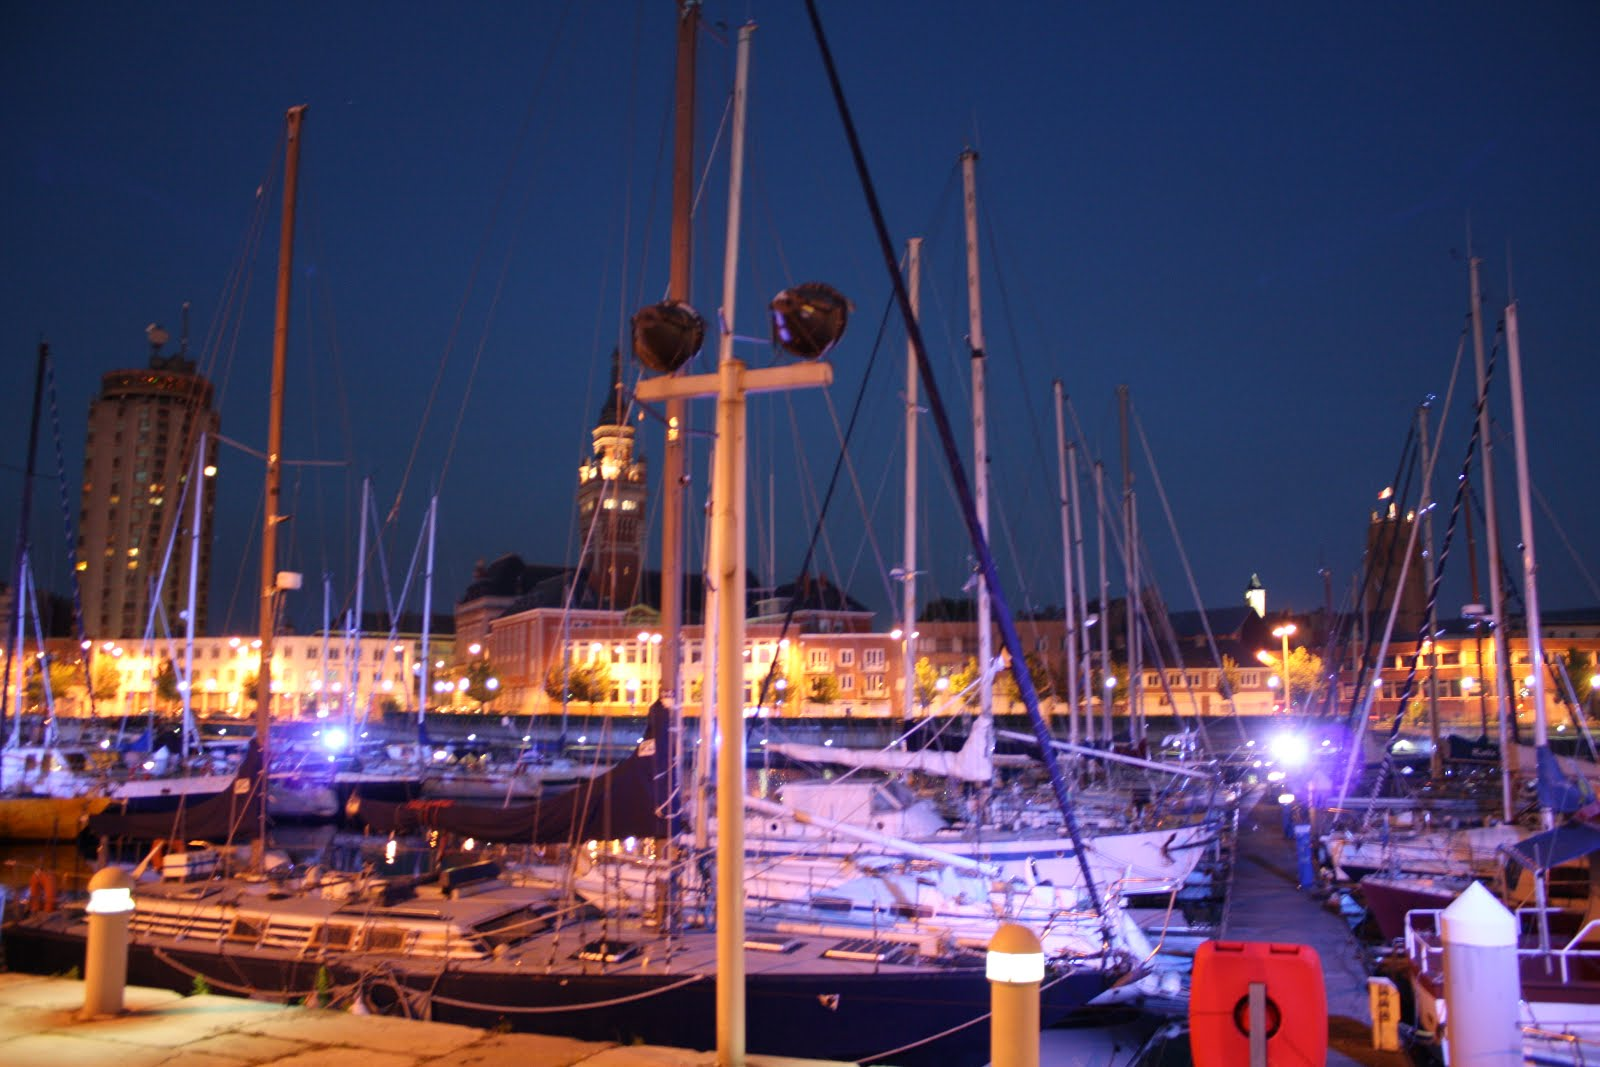 Dunkerque at night